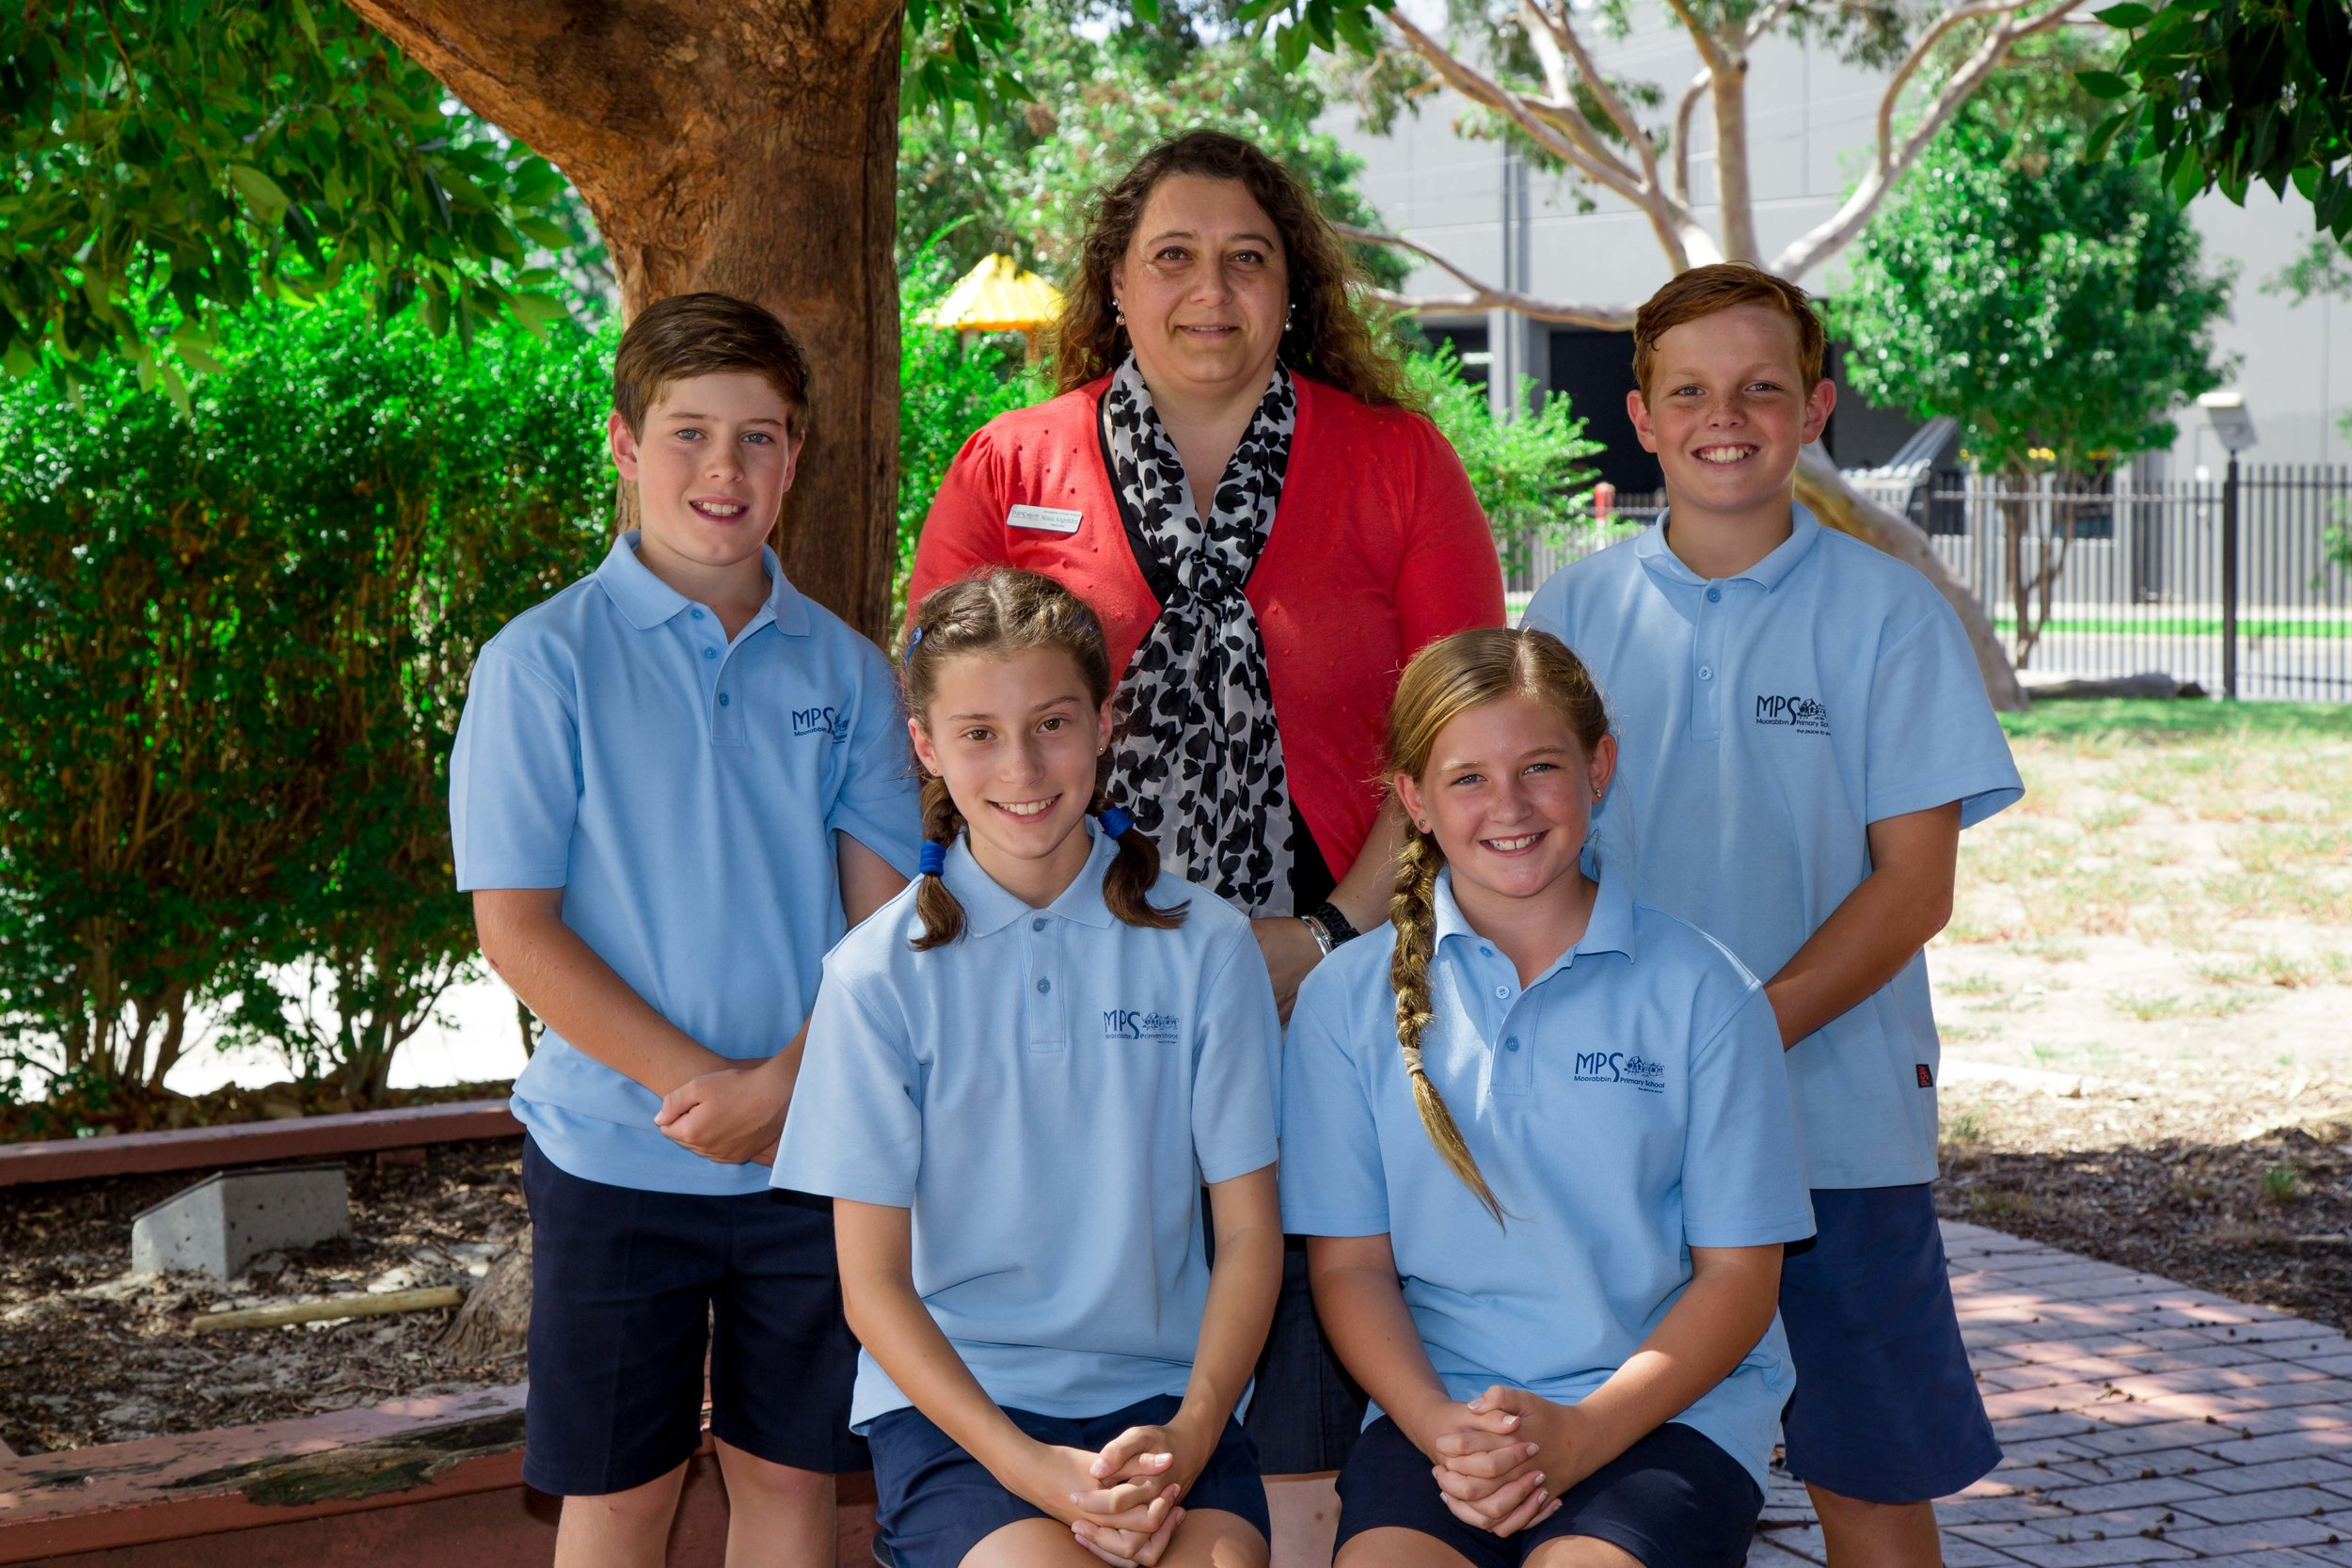 School and Vice Captains with Principle-G-15253-IMG_1387.jpg